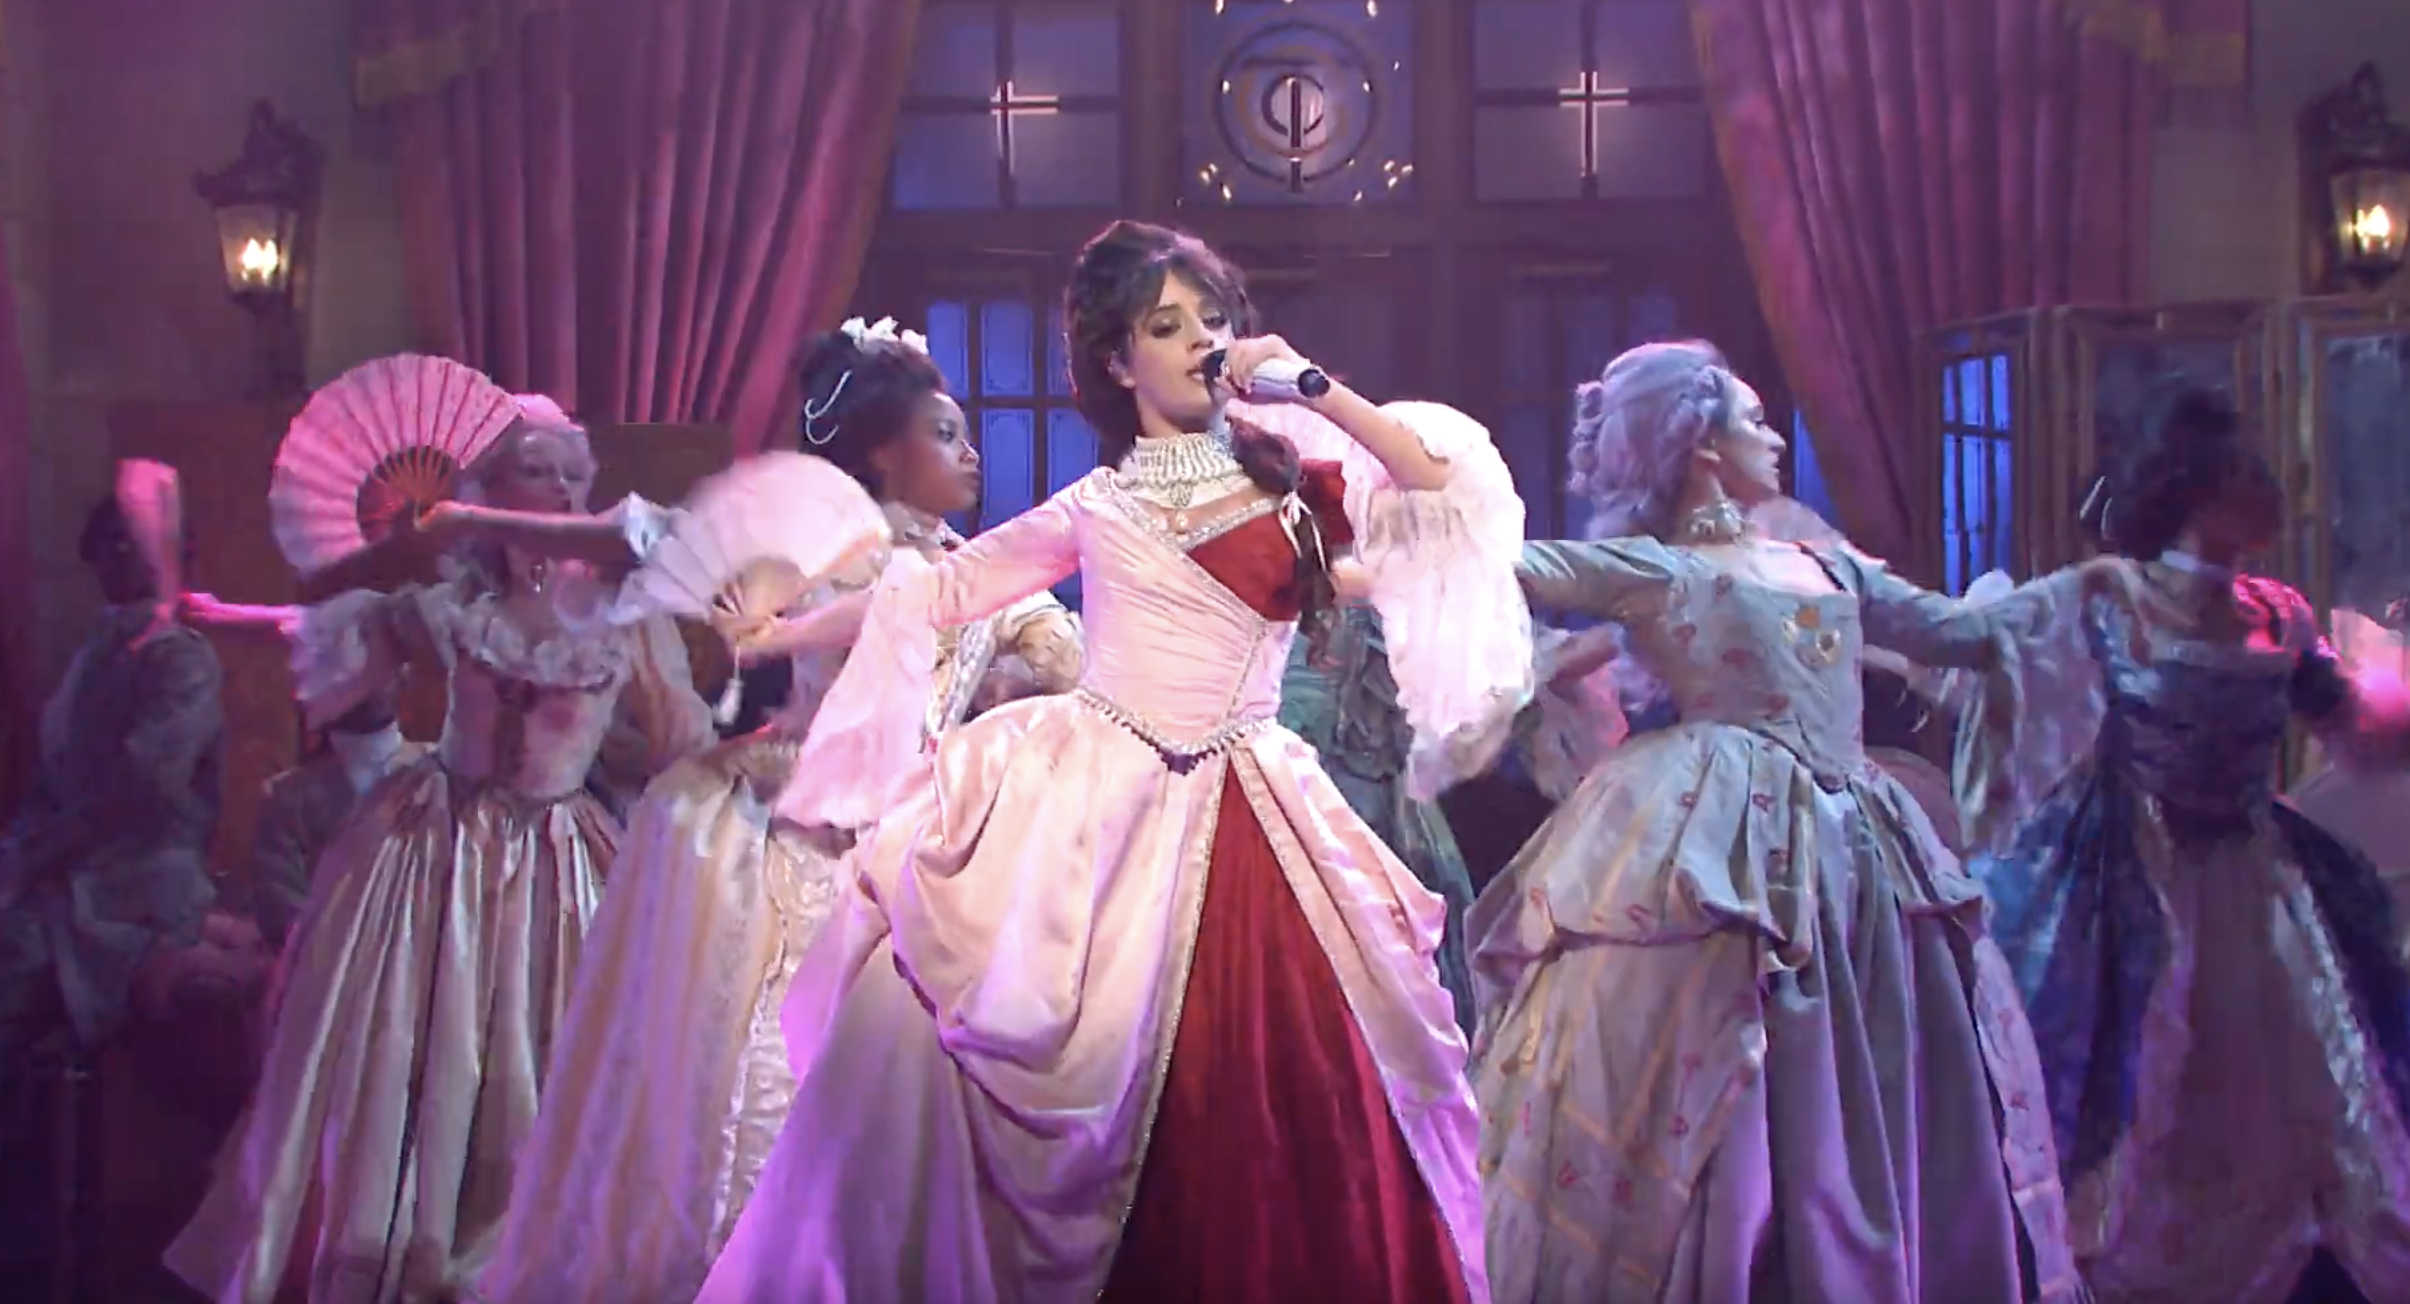 Snl Christmas Special 2019.See Camila Cabello Channel Marie Antoinette With Cry For Me